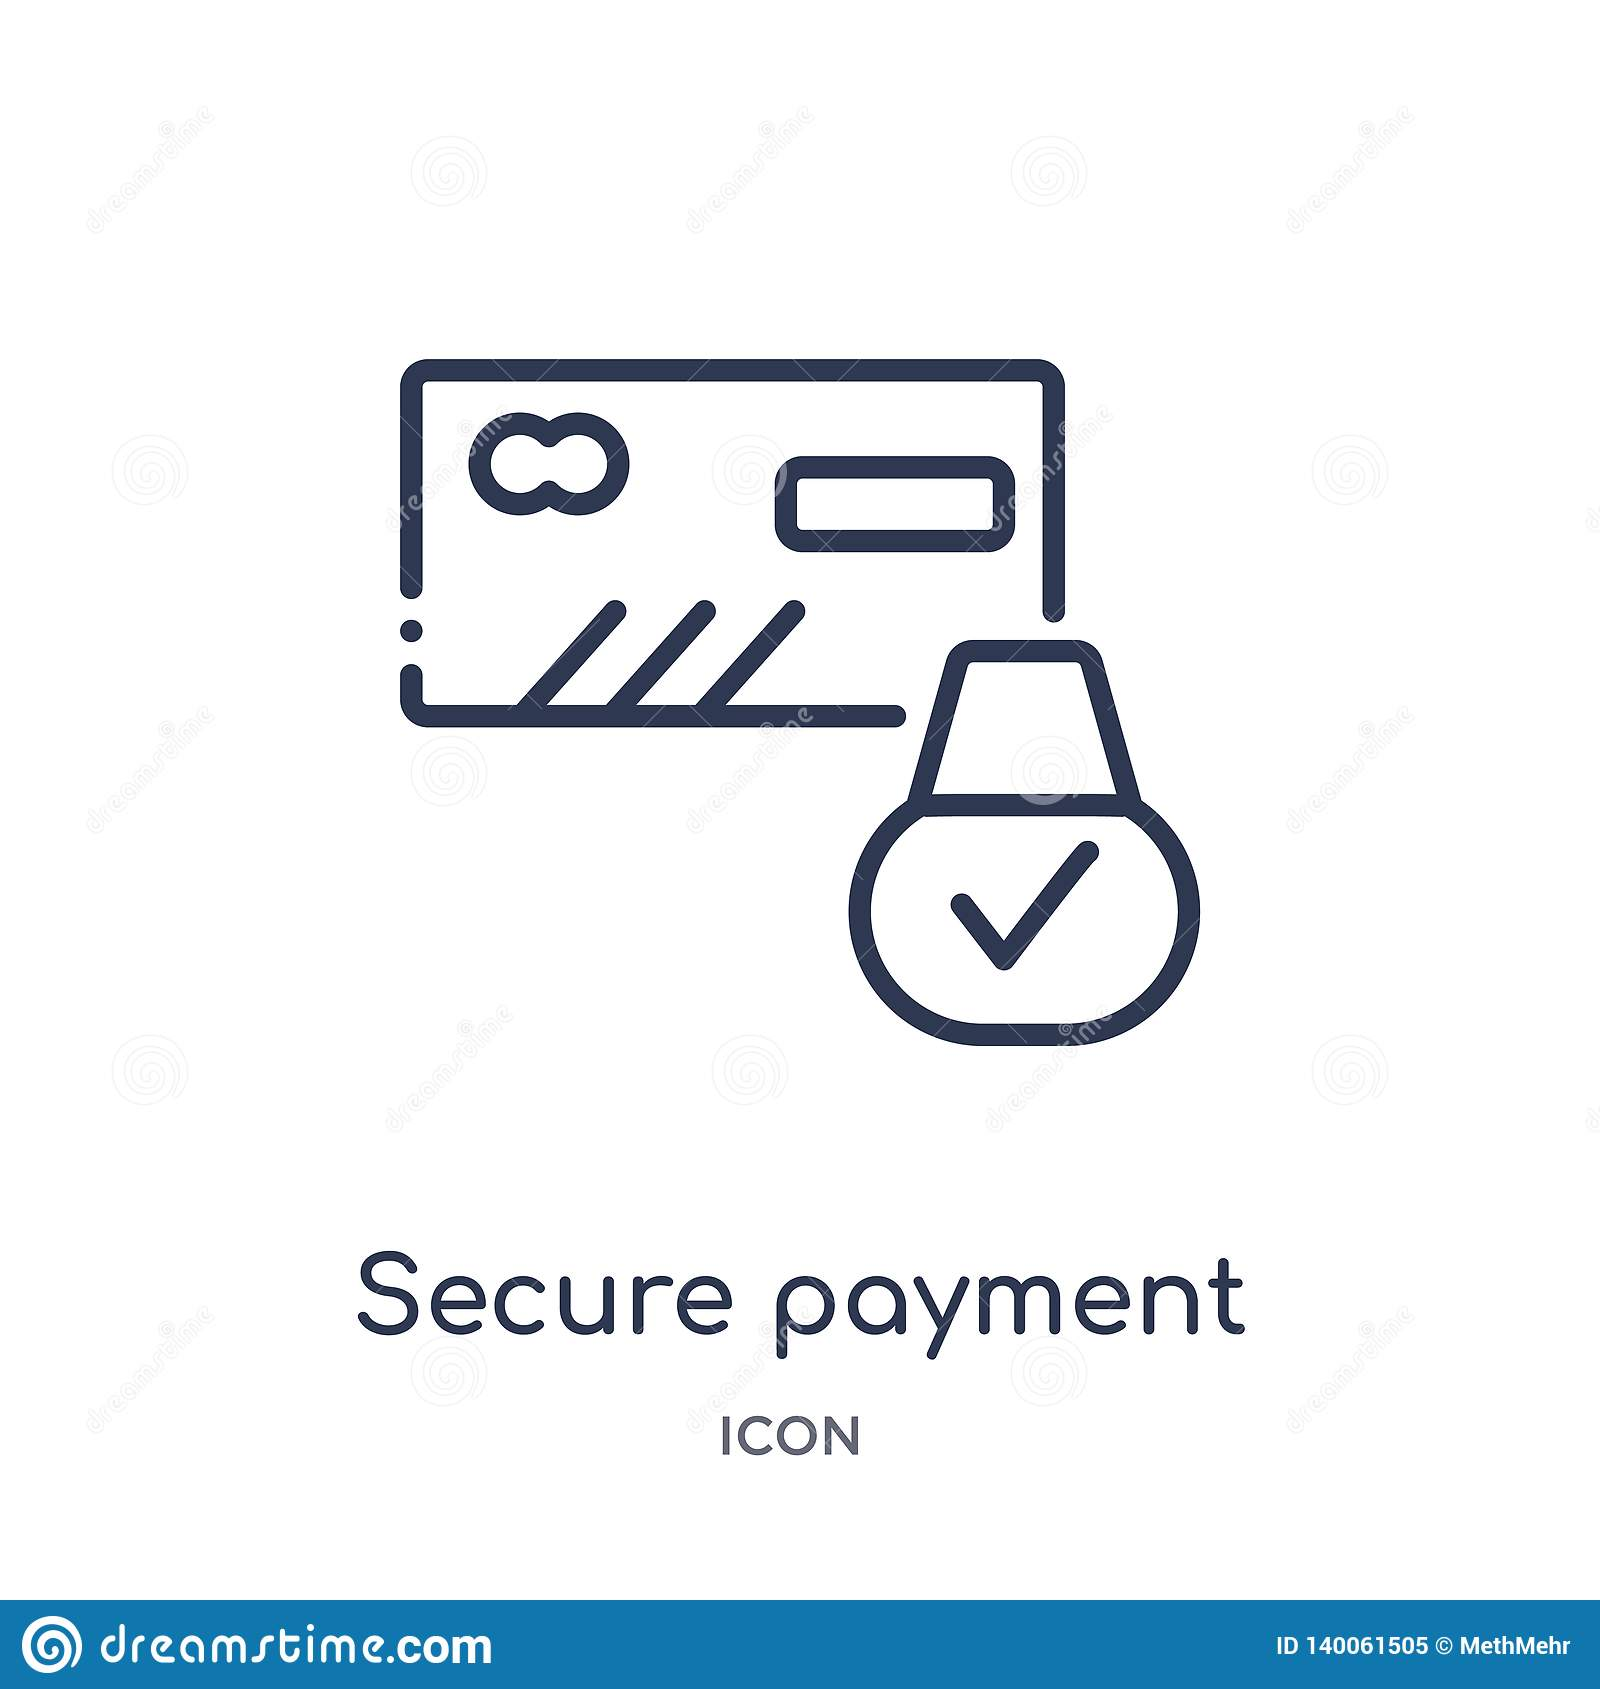 Linear secure payment icon from Internet security and networking outline collection. Thin line secure payment icon isolated on